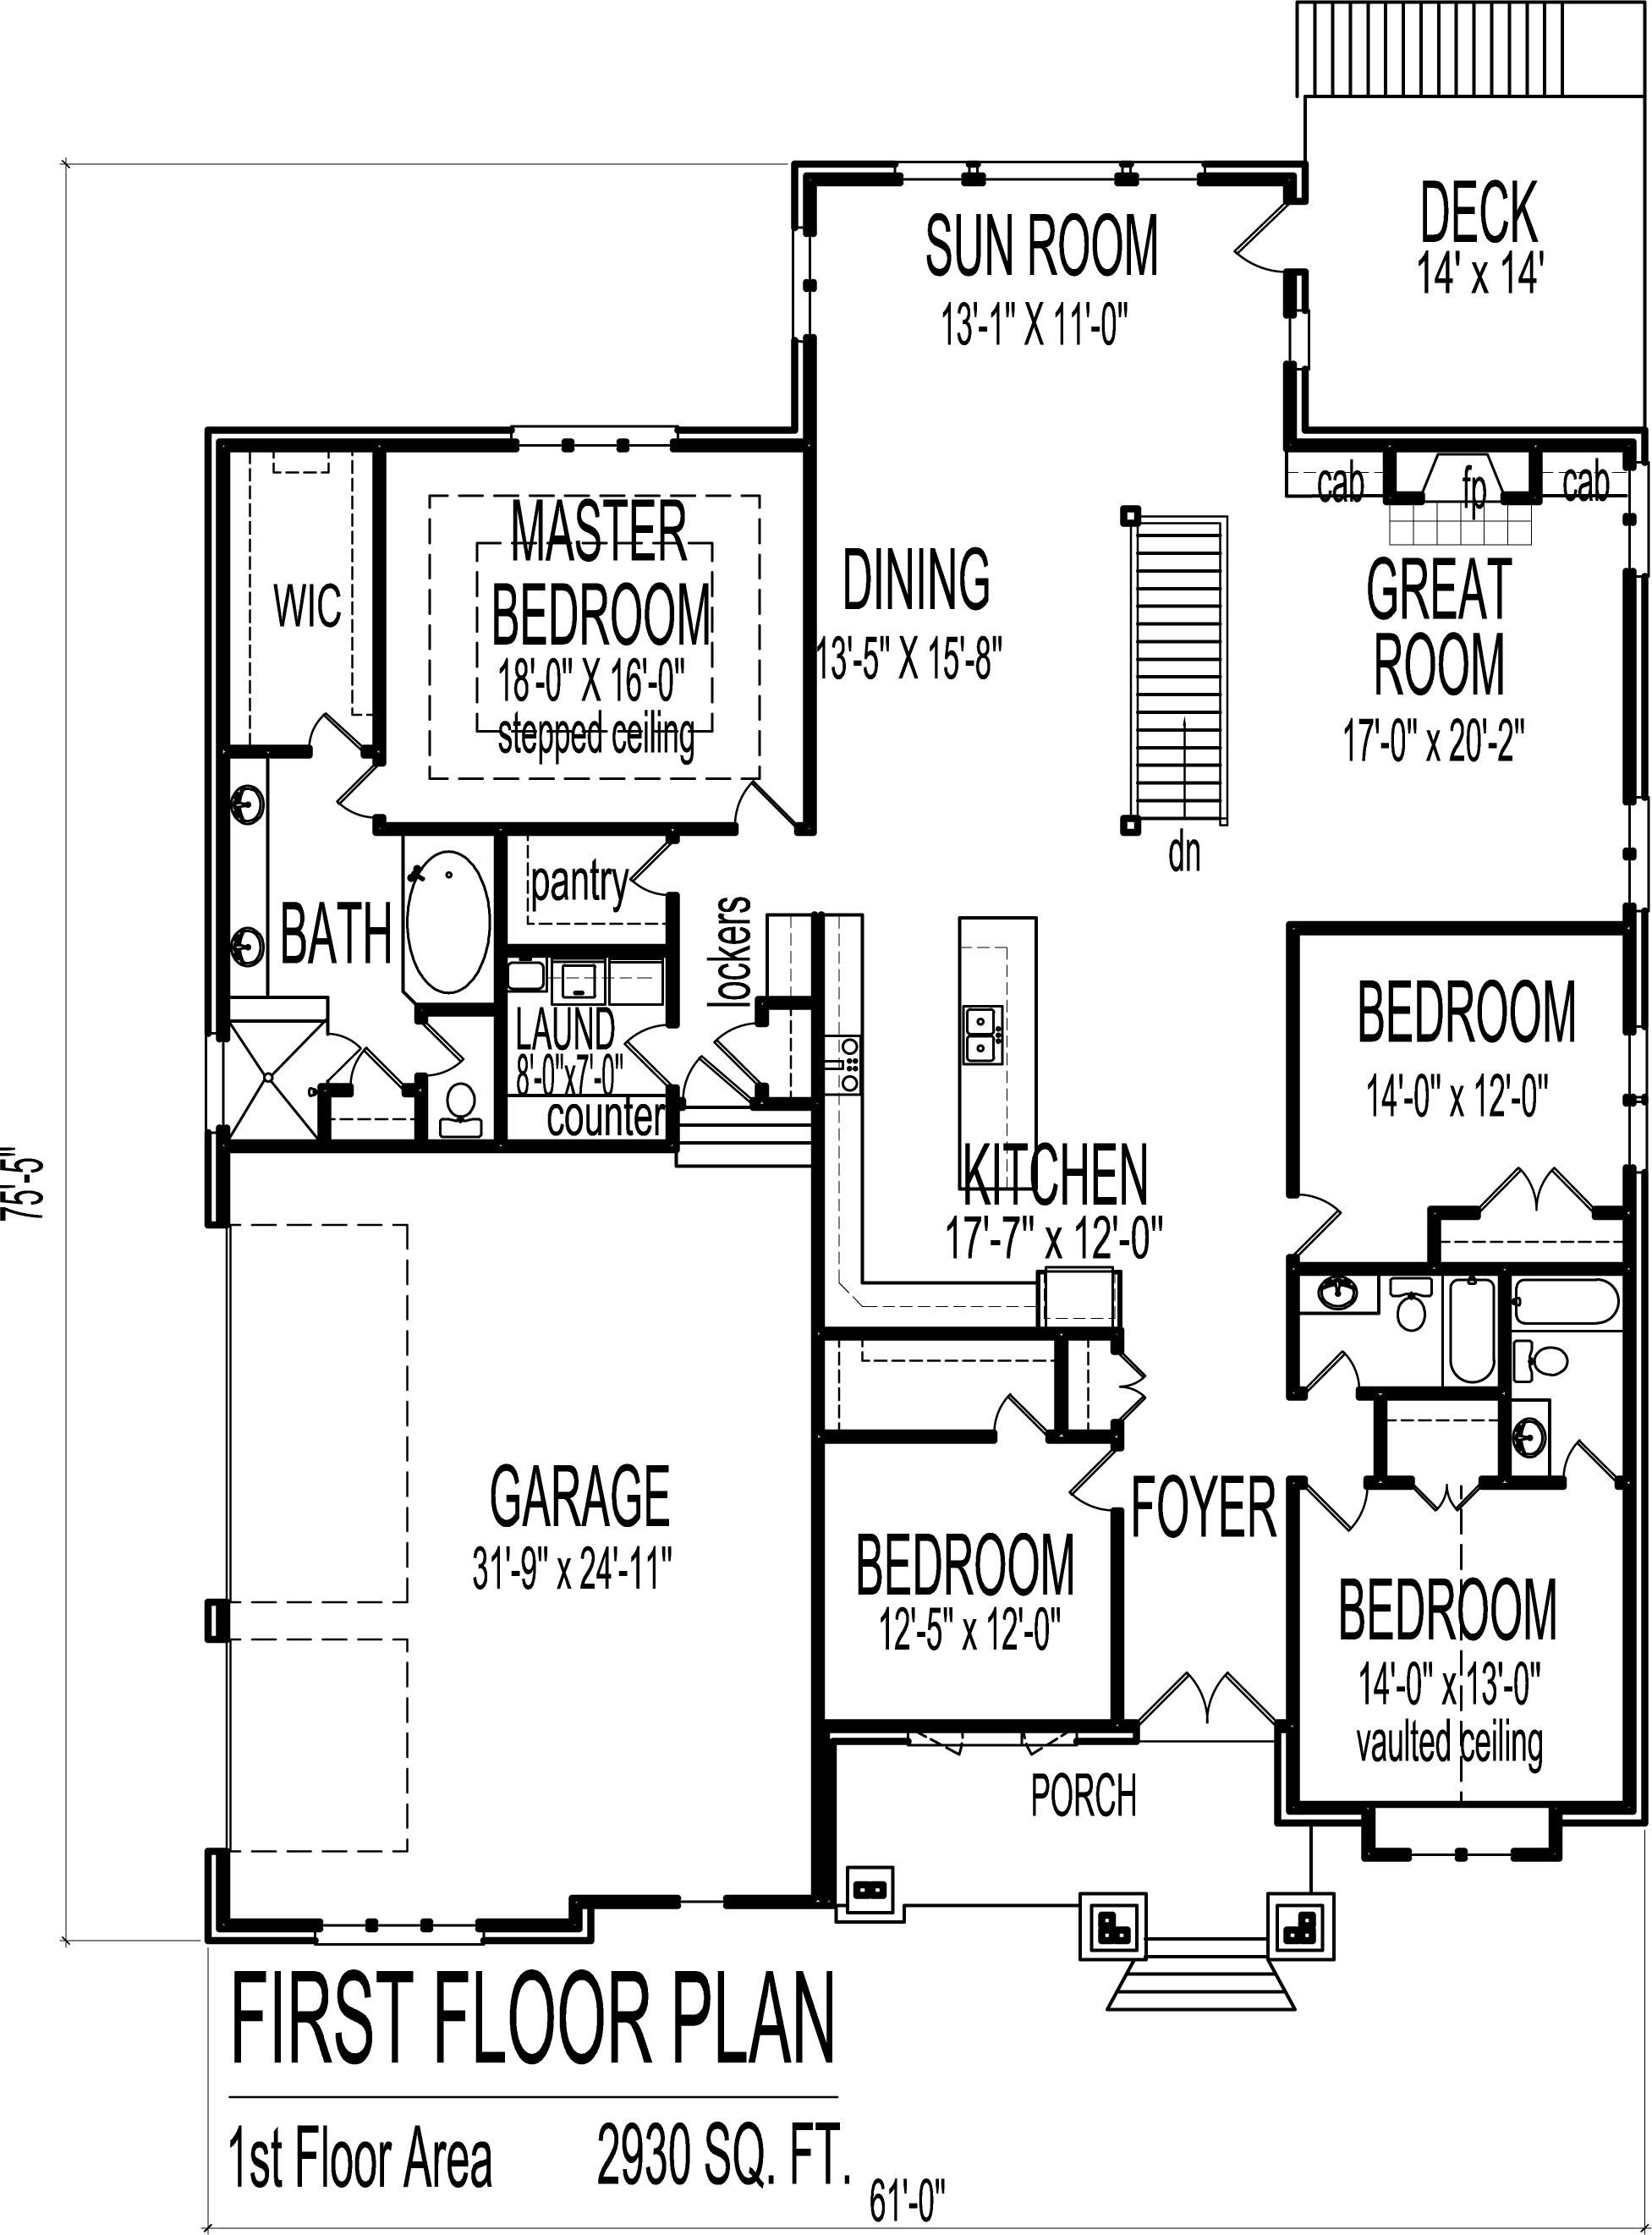 13 Lovely 4 Bedroom House Plans Philippines Check More At Http Www House Roof Site Info 4 Bedroom Bungalow House Floor Plans Bedroom House Plans House Plans